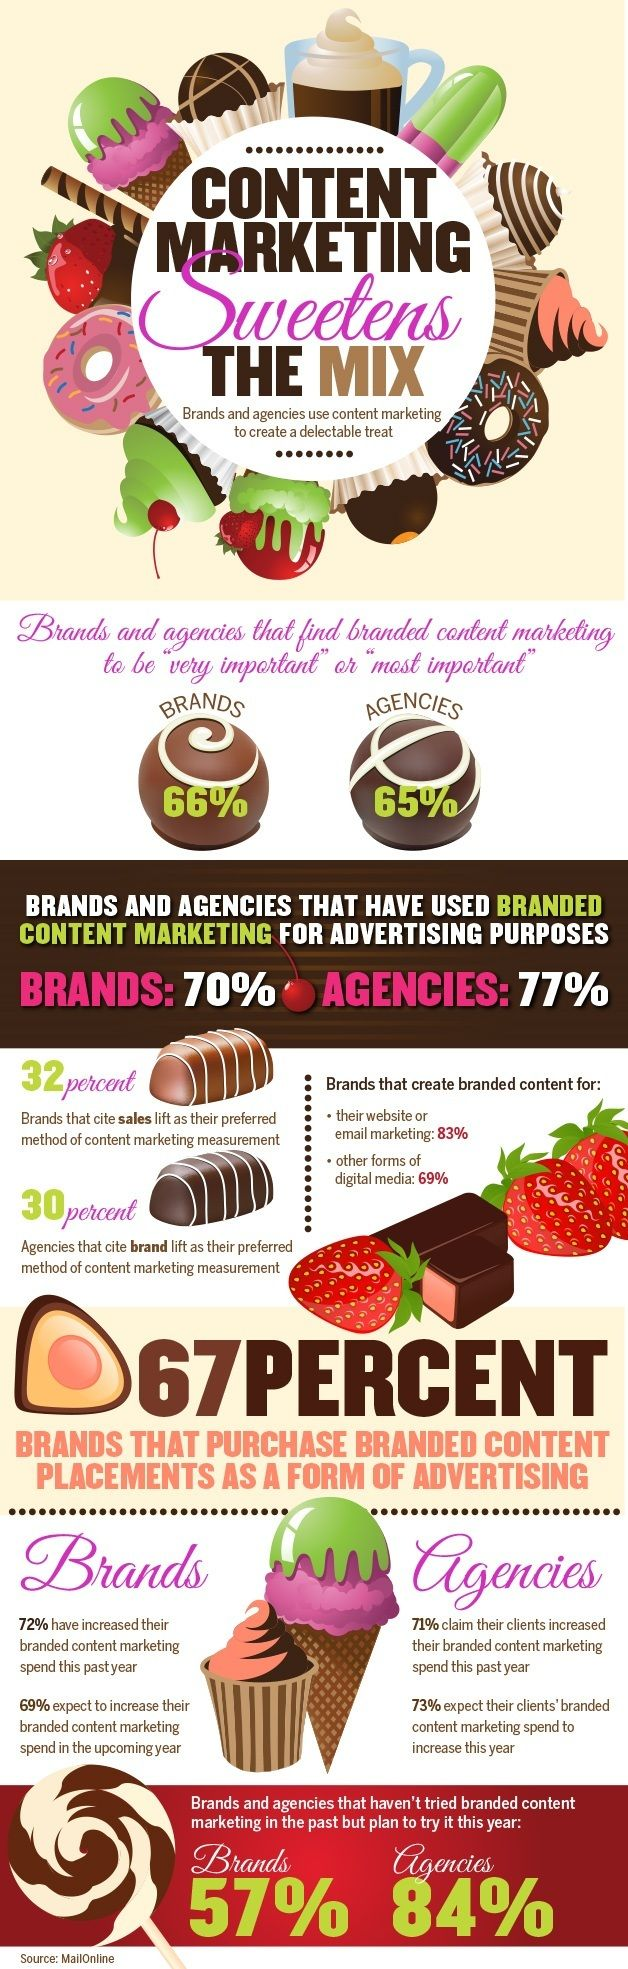 Content Marketing Sweetens the Mix